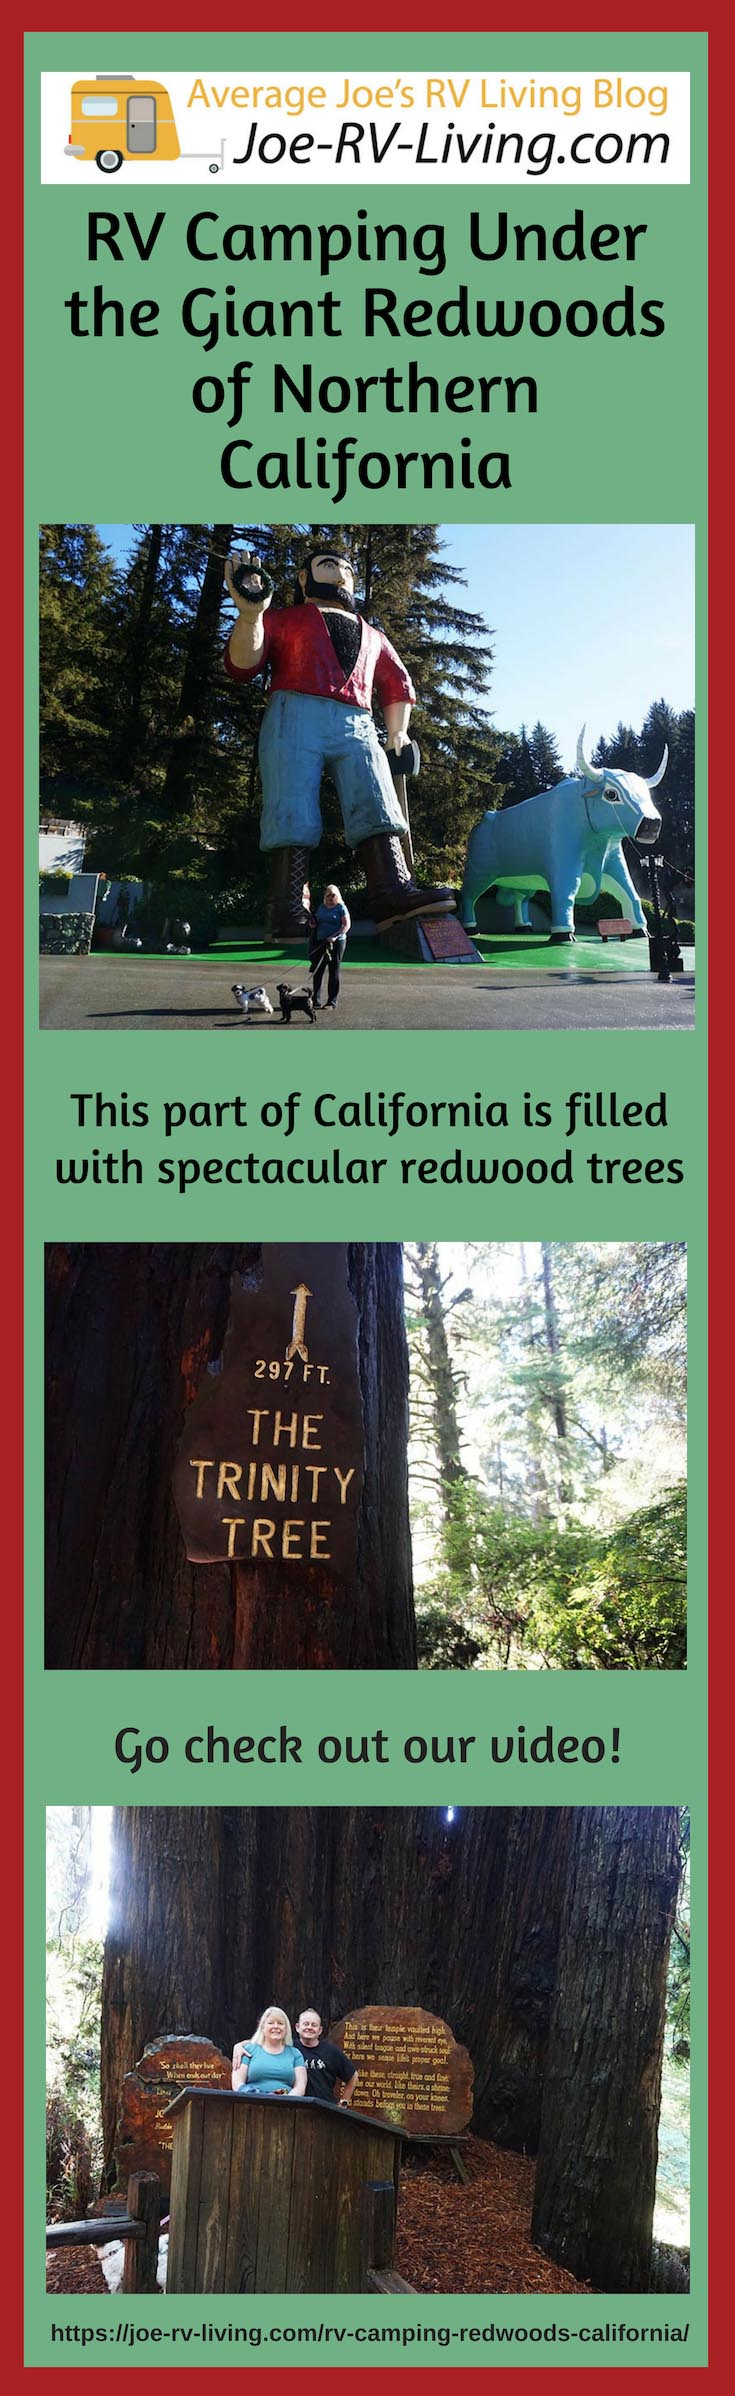 RV Camping Under the Giant Redwoods of Northern California.